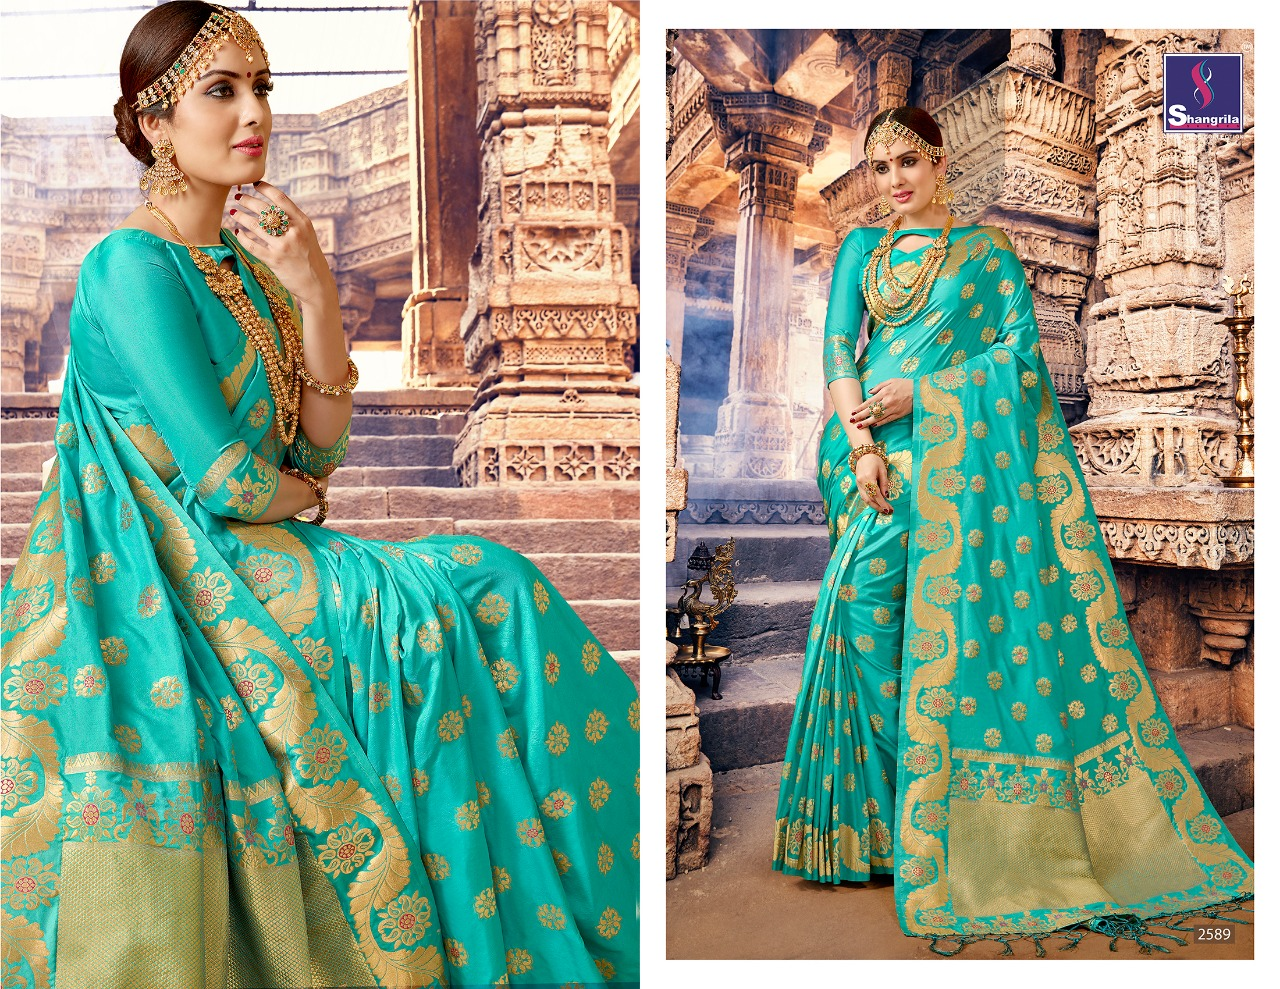 Shangrila Nalli New Arrival Silk Sarees Collection